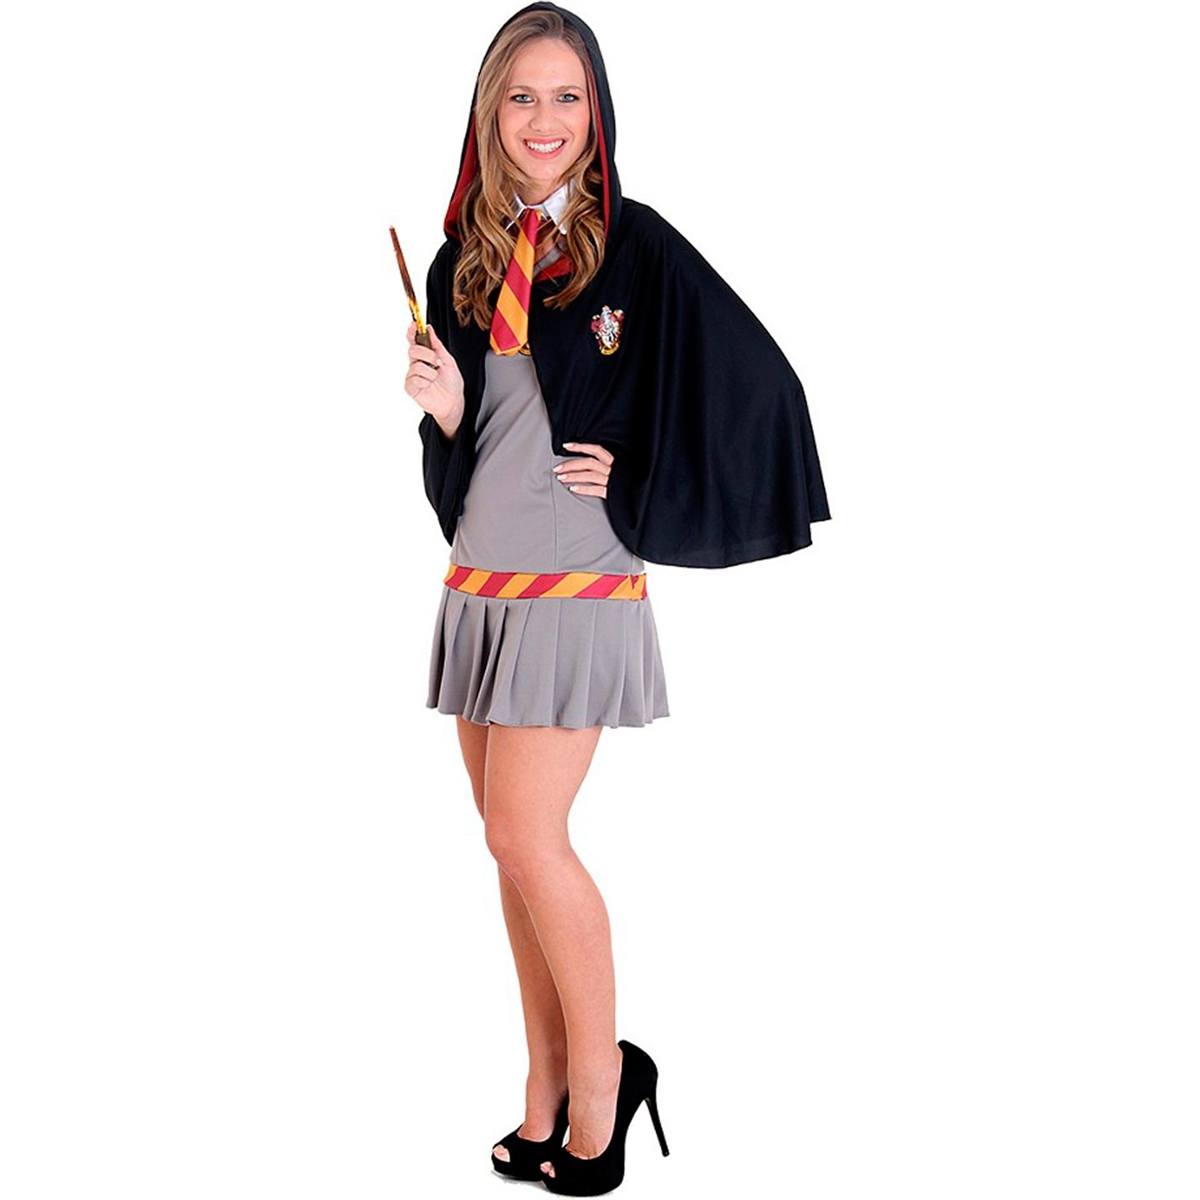 Fantasia Hermione Teen Harry Potter Completa Fantasiascarol